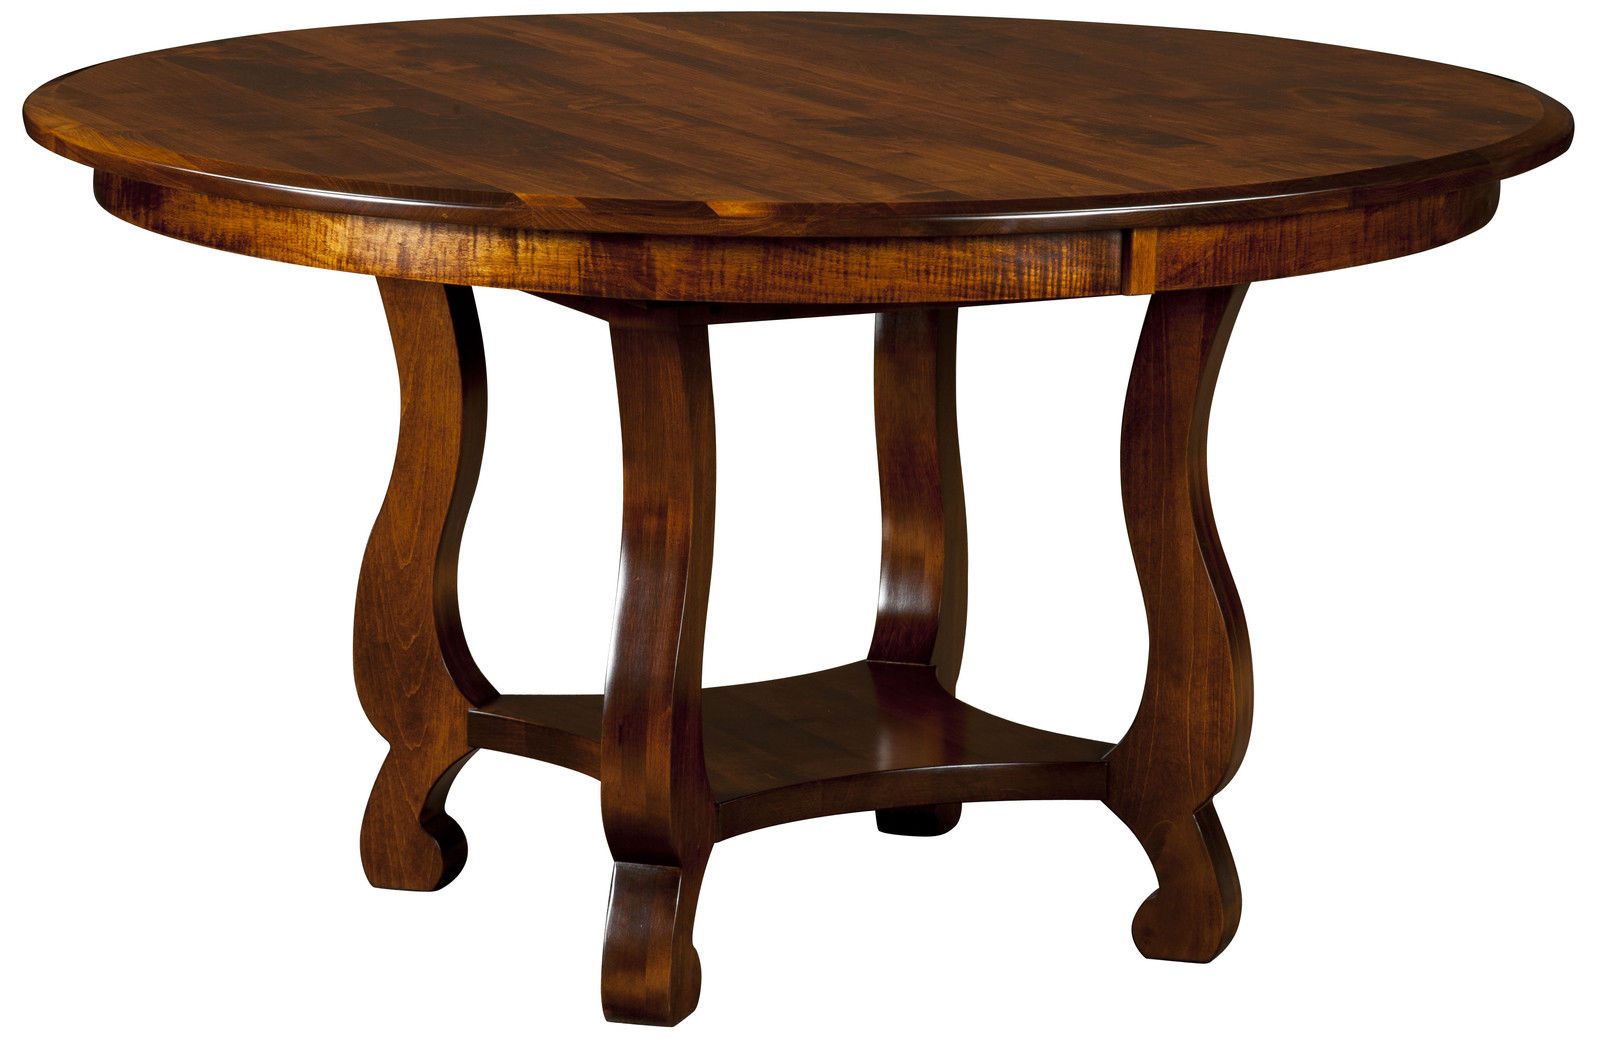 Kitchen round table and chairs photo - 1